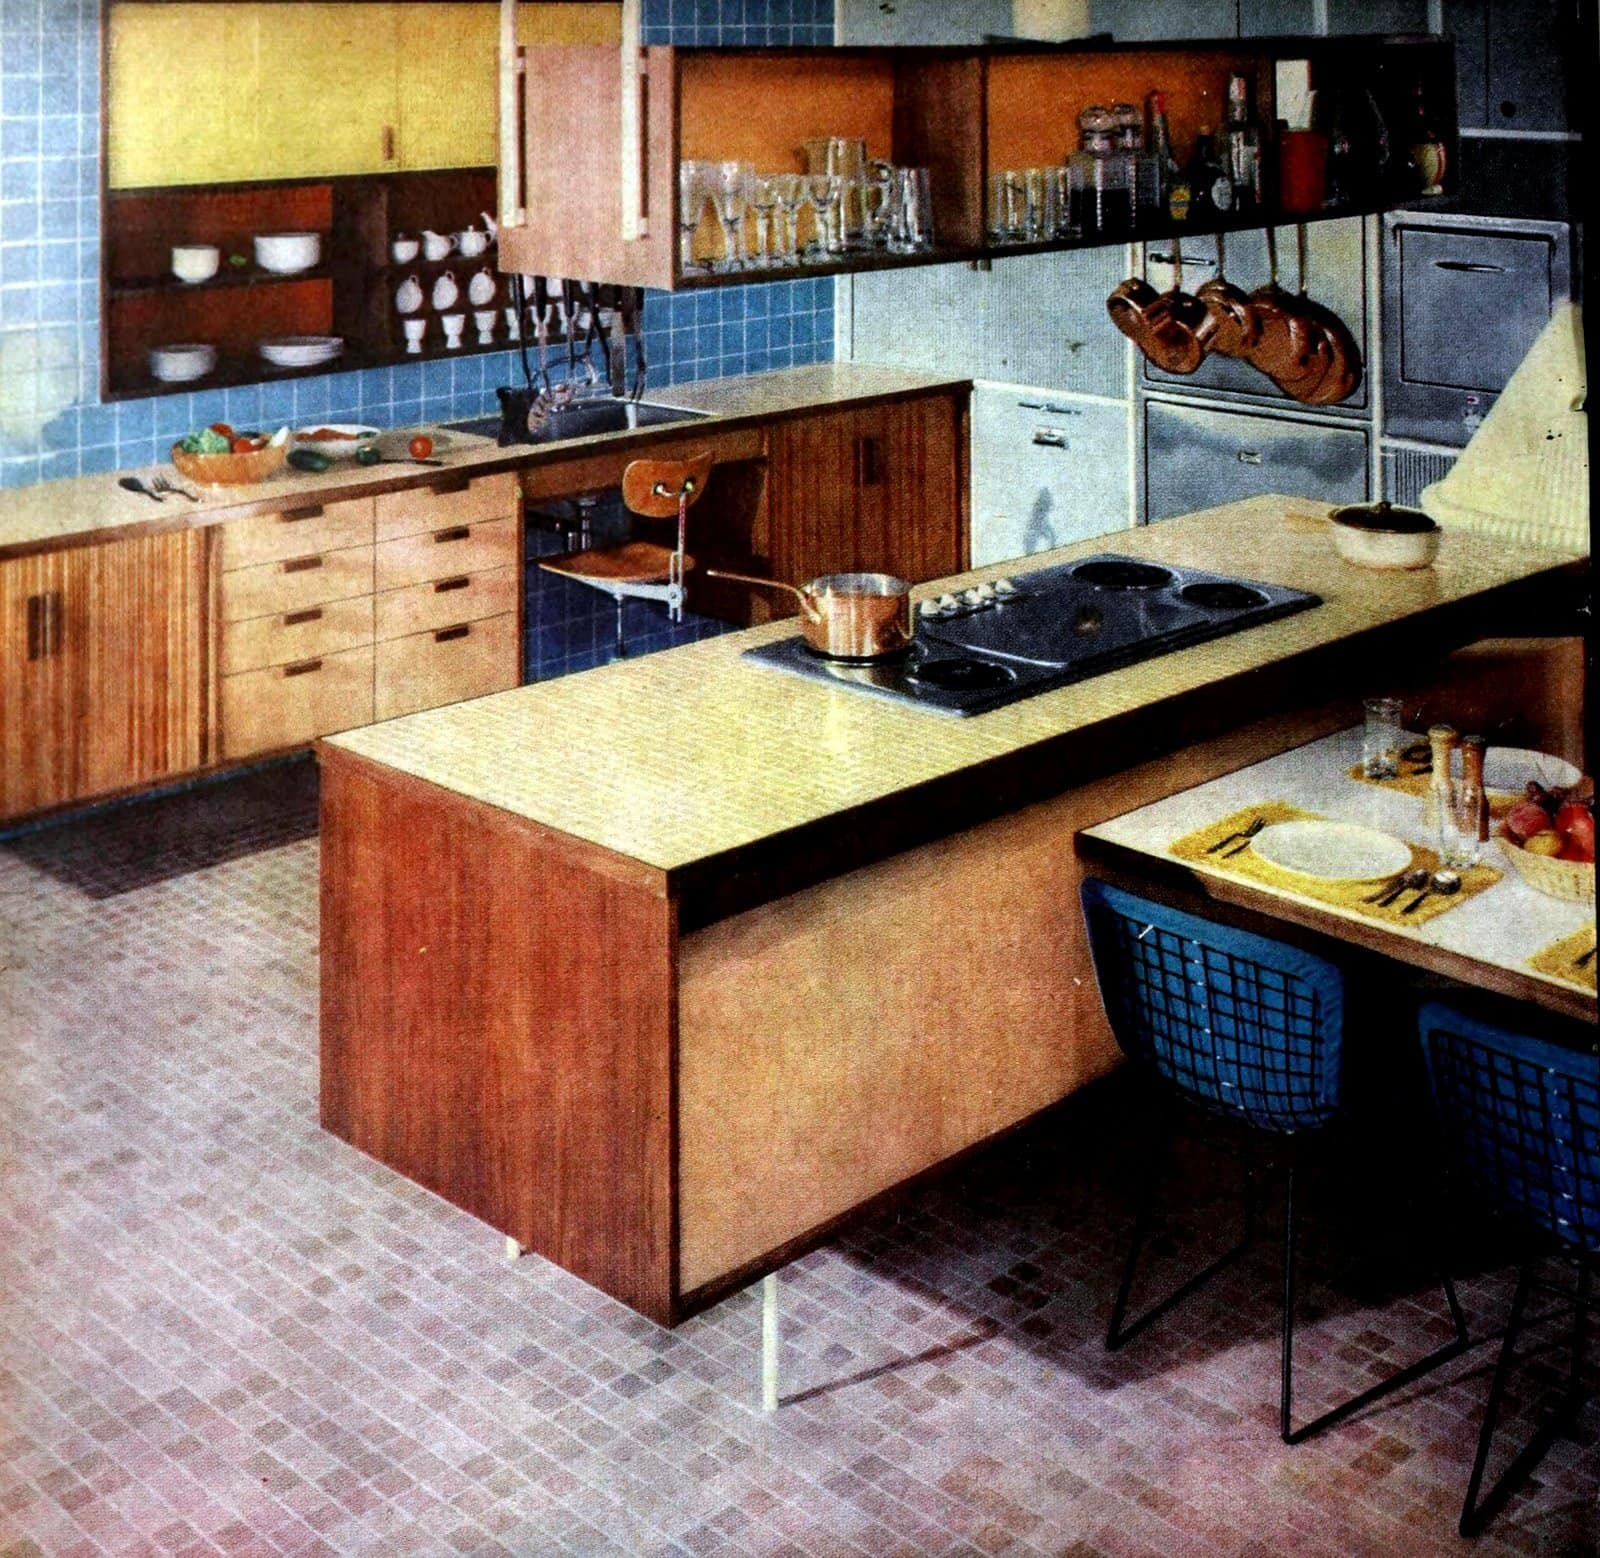 Vintage kitchen design with tile floors, walls and countertops (1960)